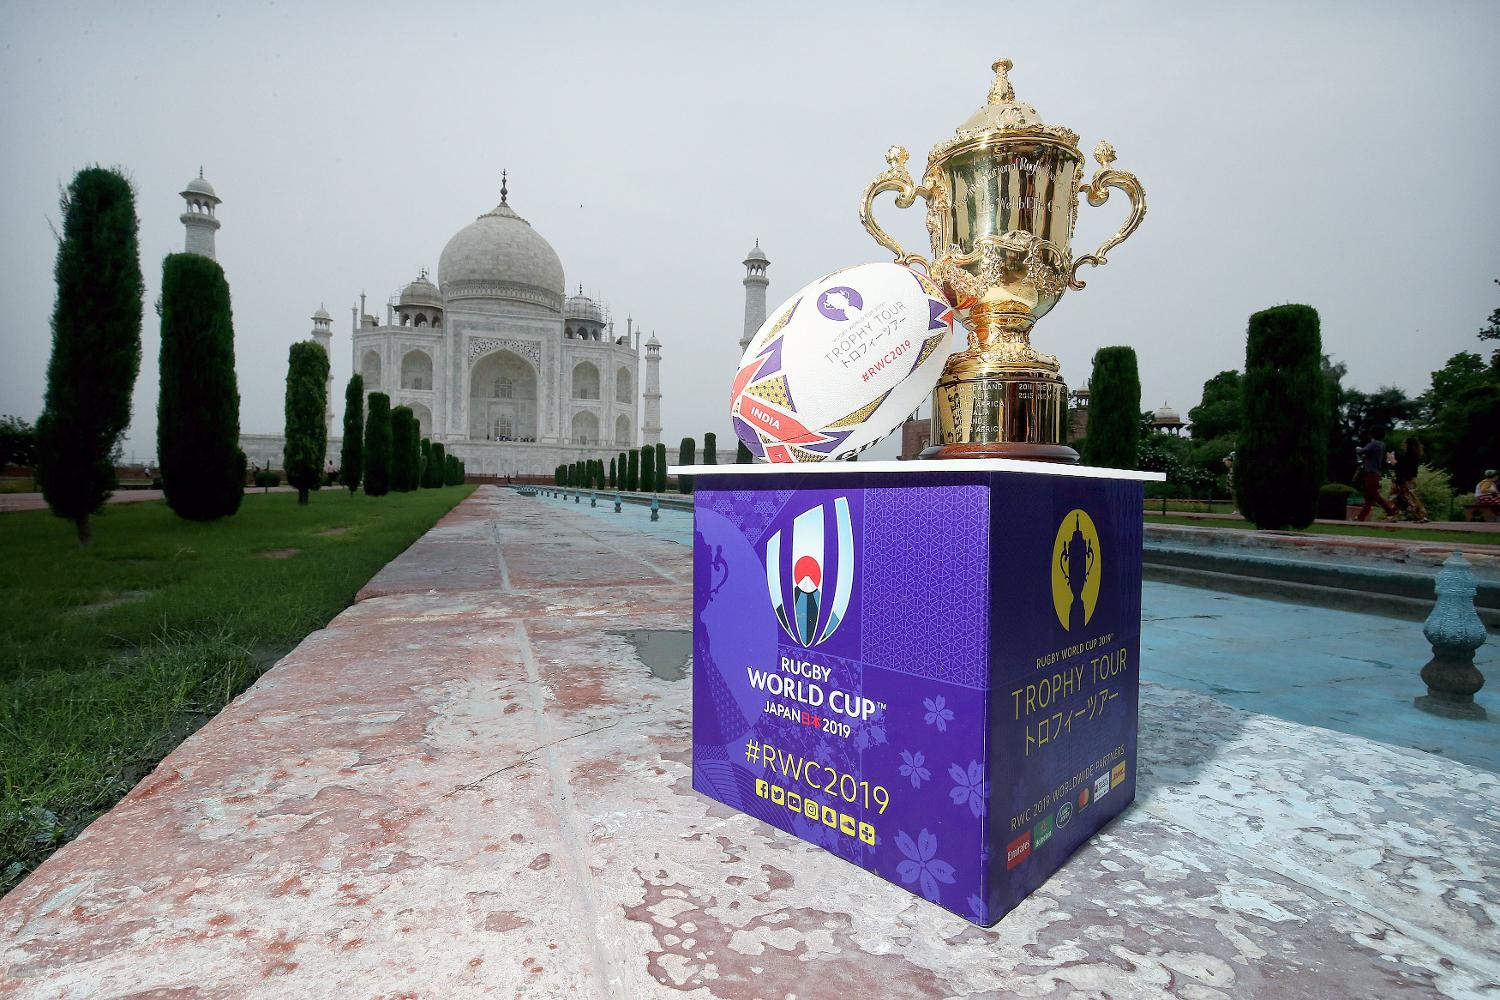 Rugby World Cup 2019 Trophy Tour - India